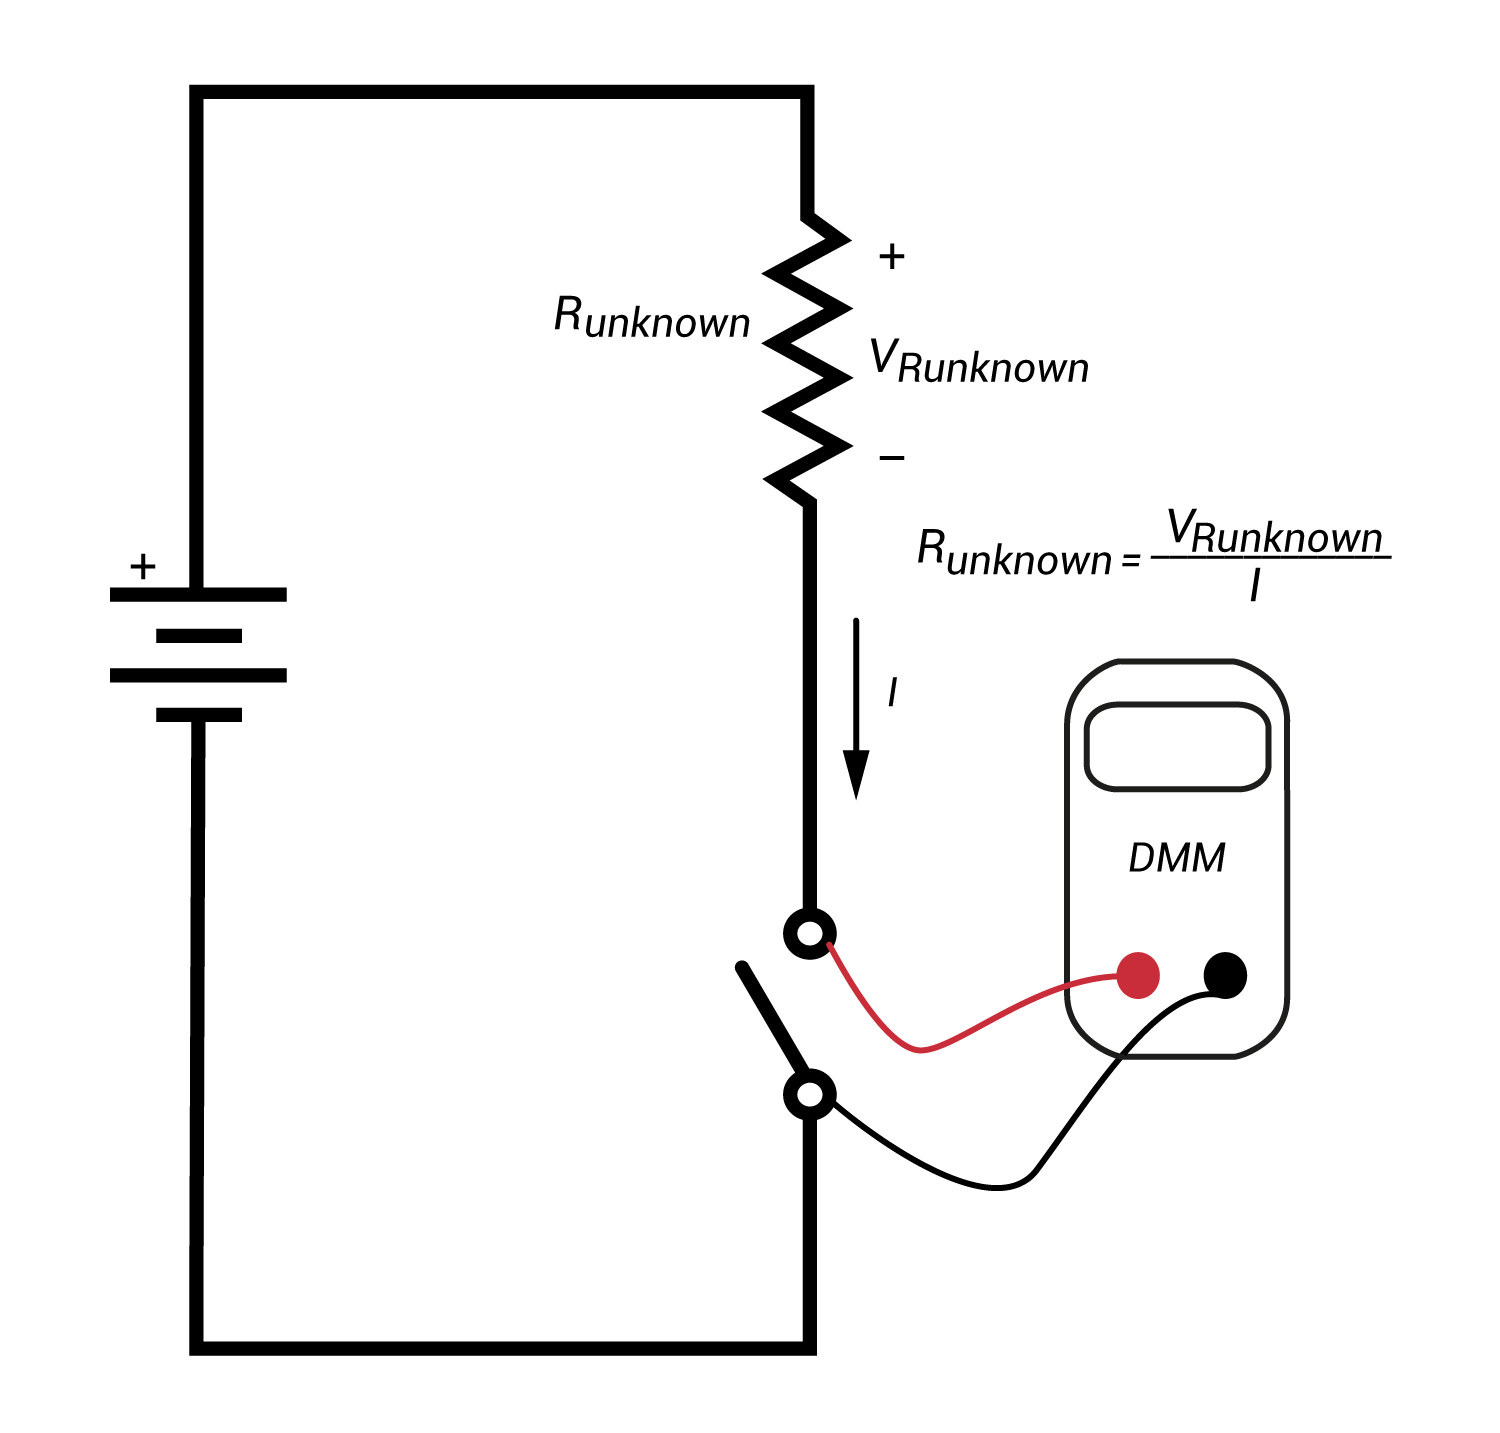 resistor circuit diagram 1998 ford f150 transmission measuring resistance in and out using a dmm